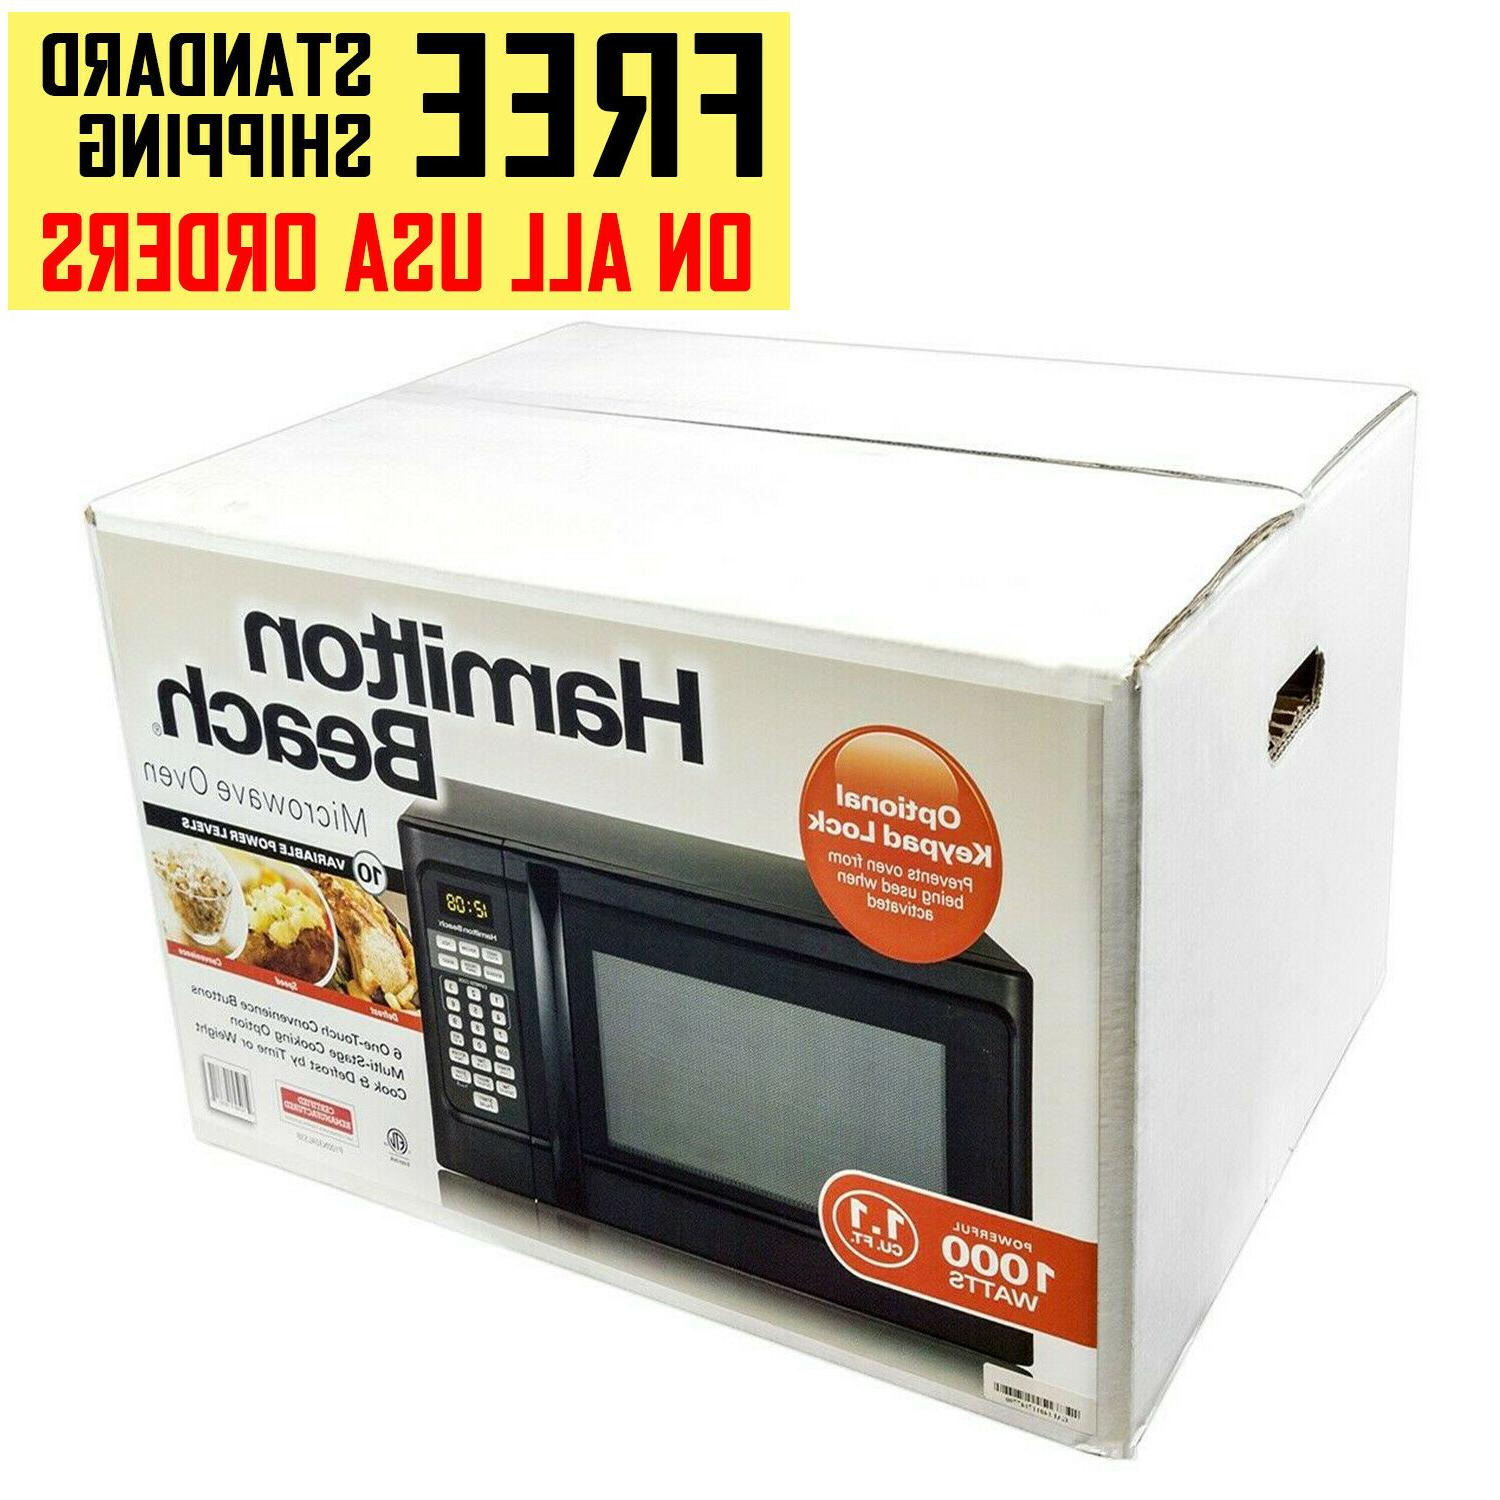 1 1 cu ft microwave oven 1000